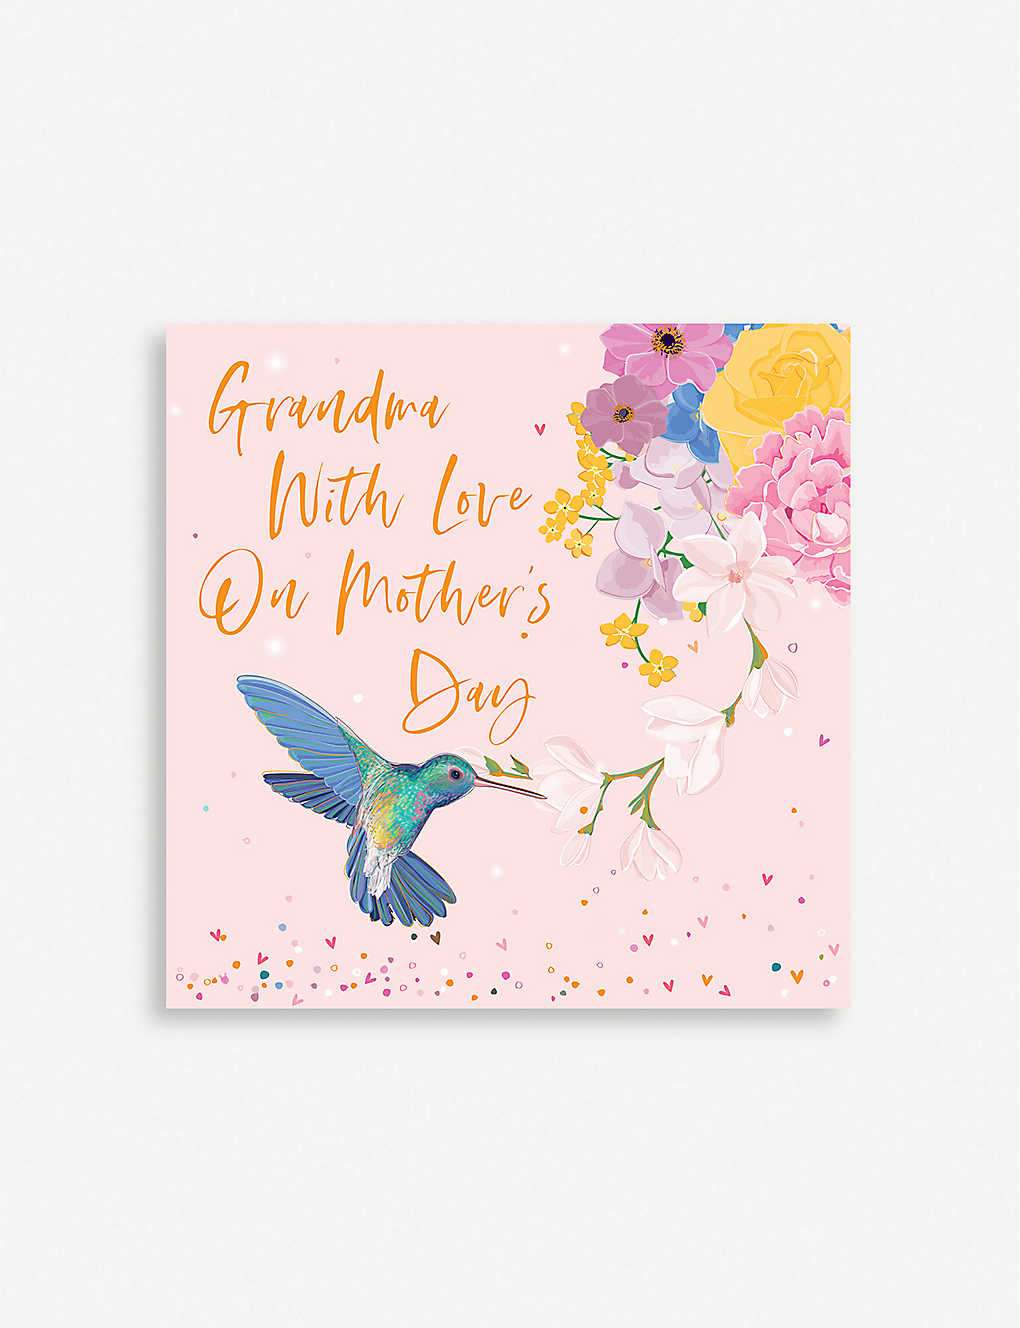 Grandma With Love on Mother's Day